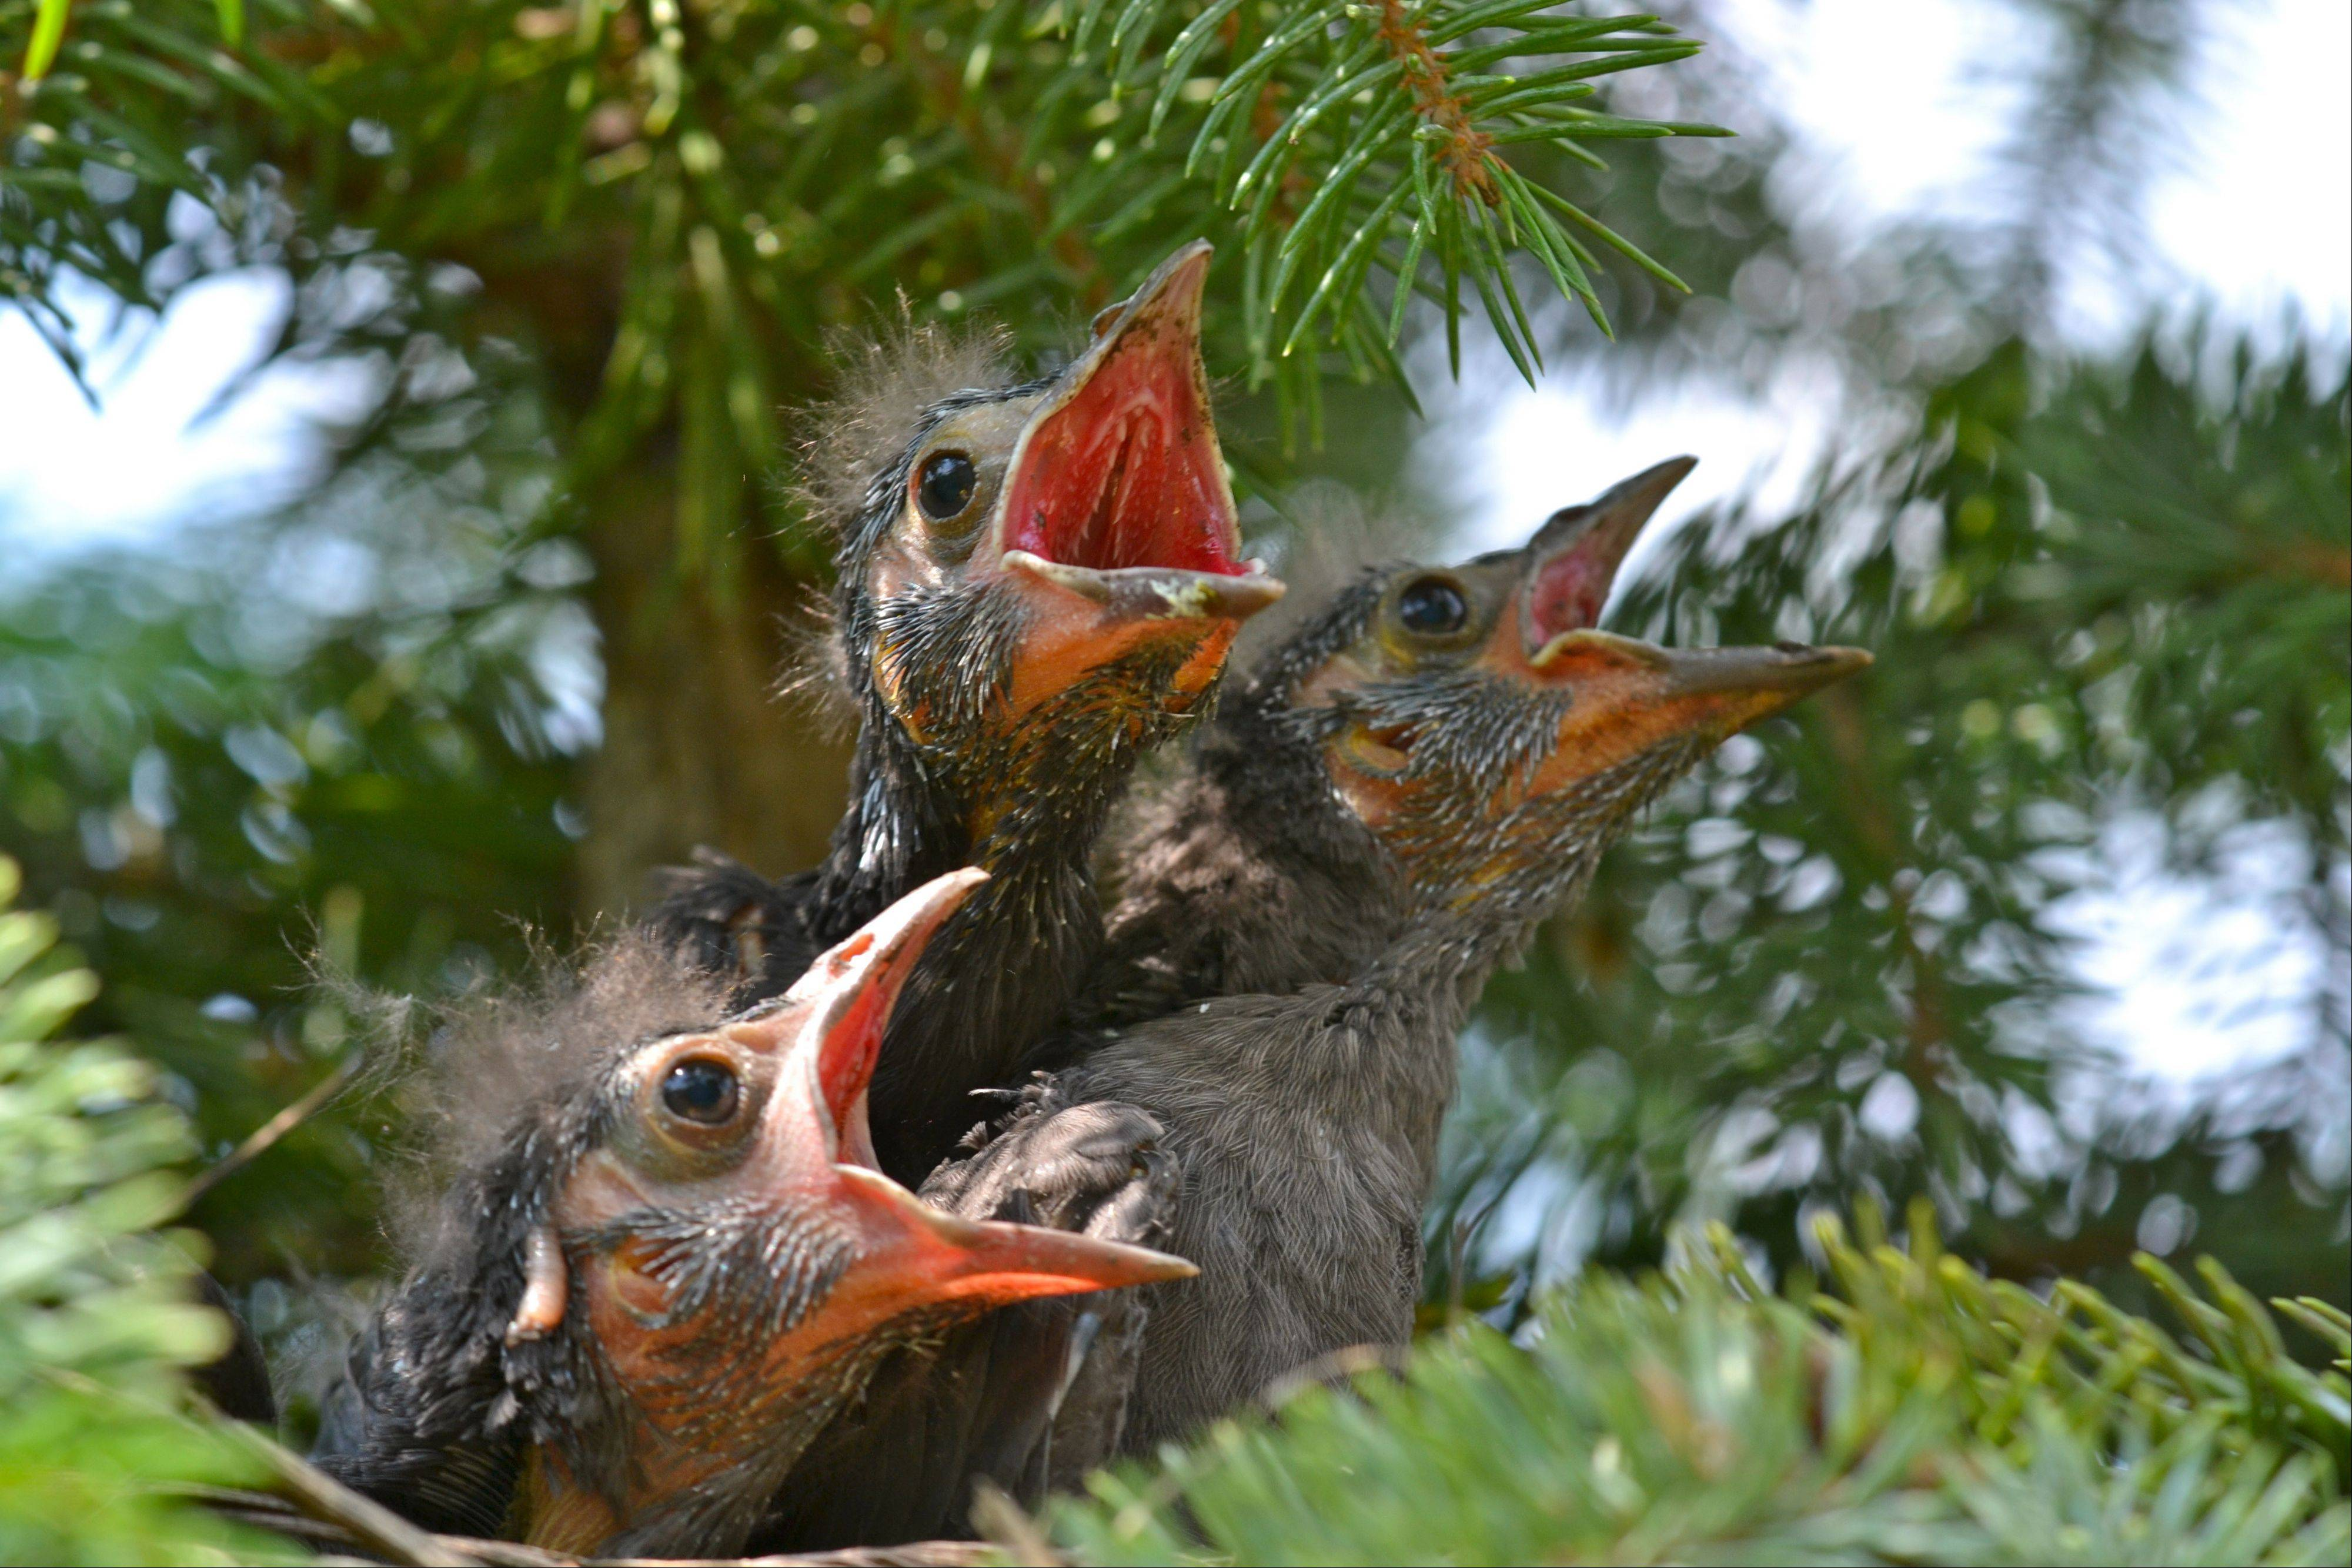 This photo was taken in my neighbors yard. She recently had landscaping done that included new trees. One of the trees that was planted in her yard came with a birds nest in it with baby birds living in it! I took this opportunity to get some photos of the baby birds.